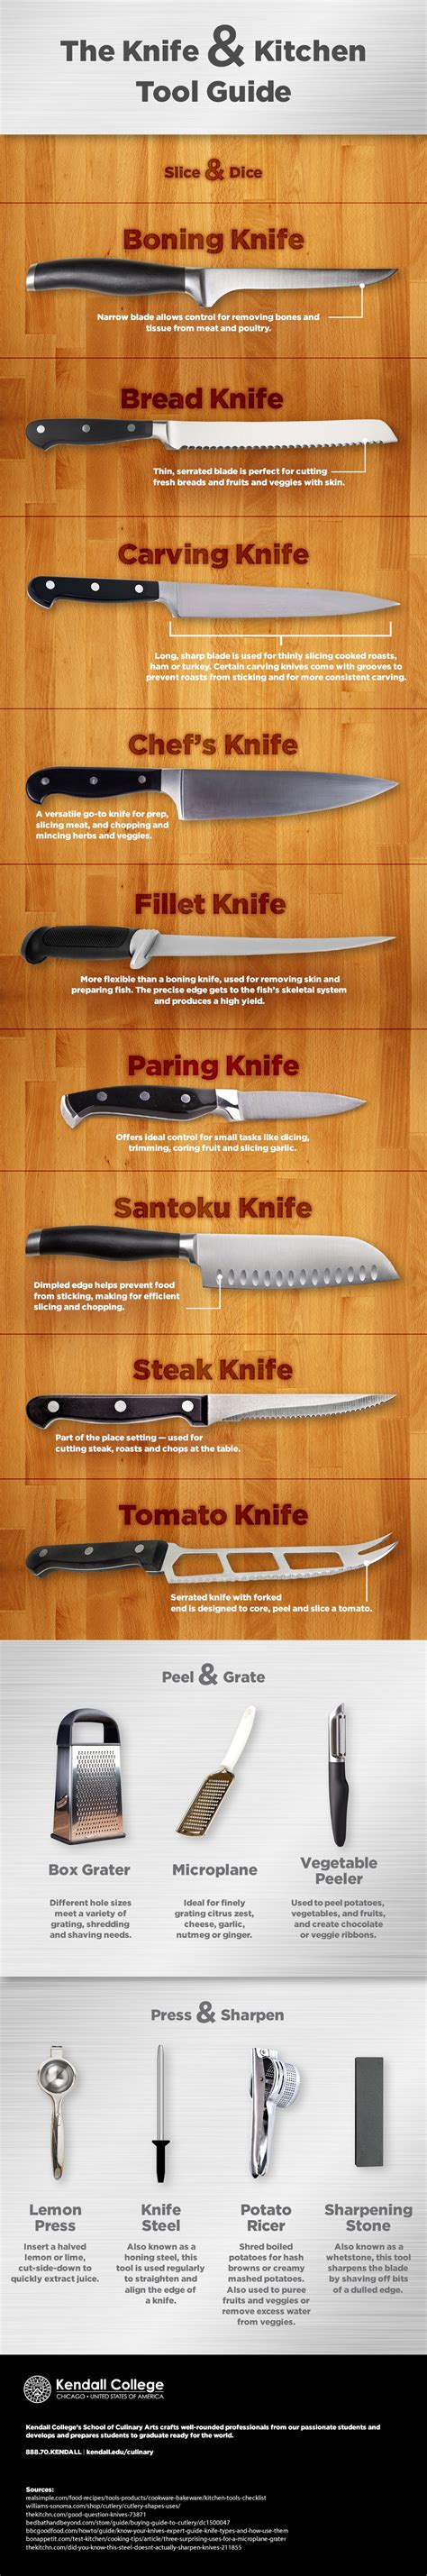 kitchen knives guide the knife kitchen tool guide kendall college